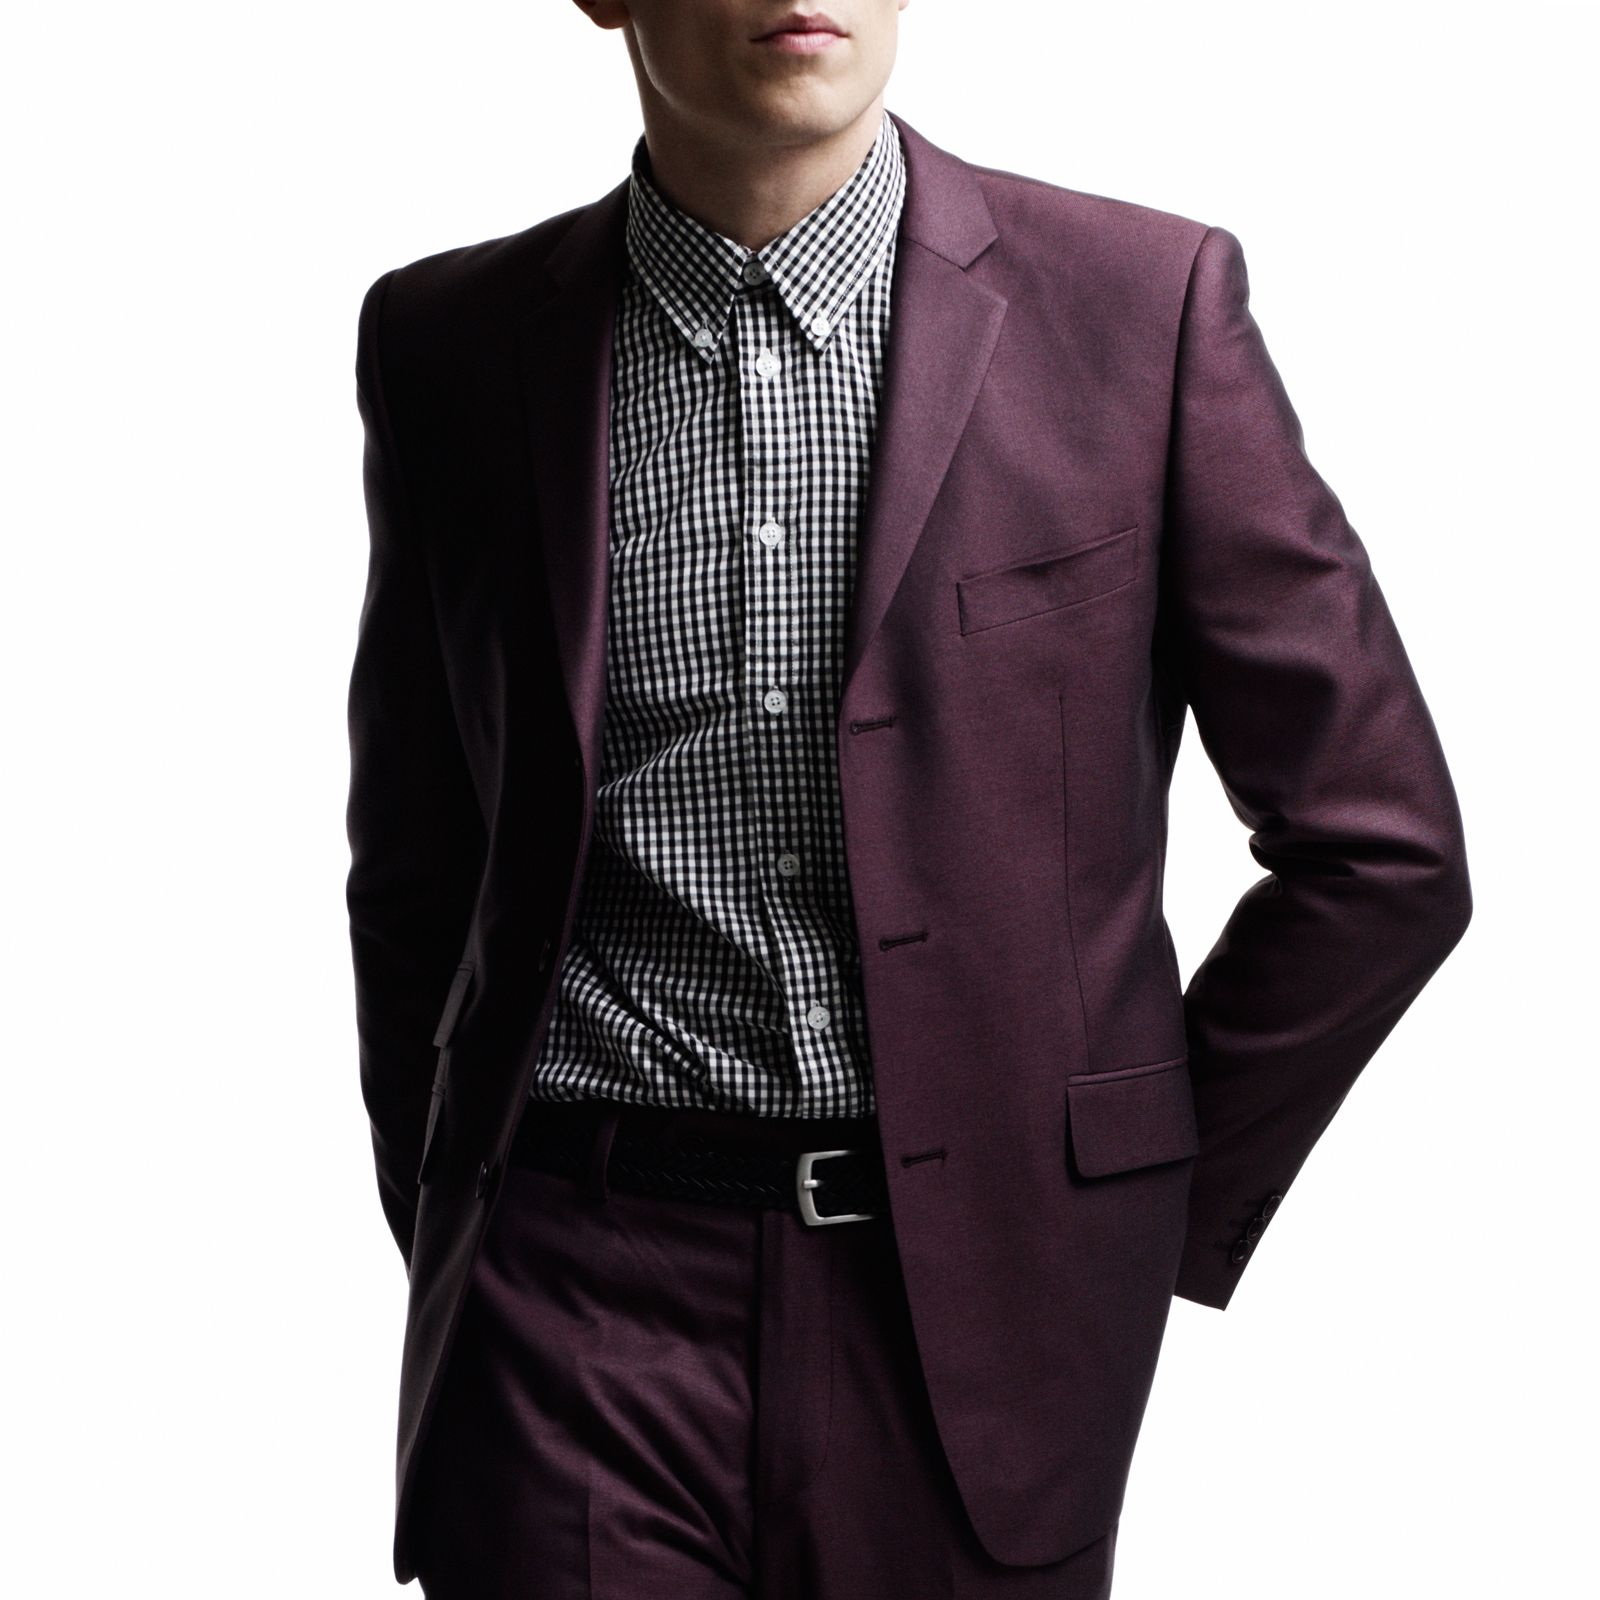 Suit Jackets For Men getOpD